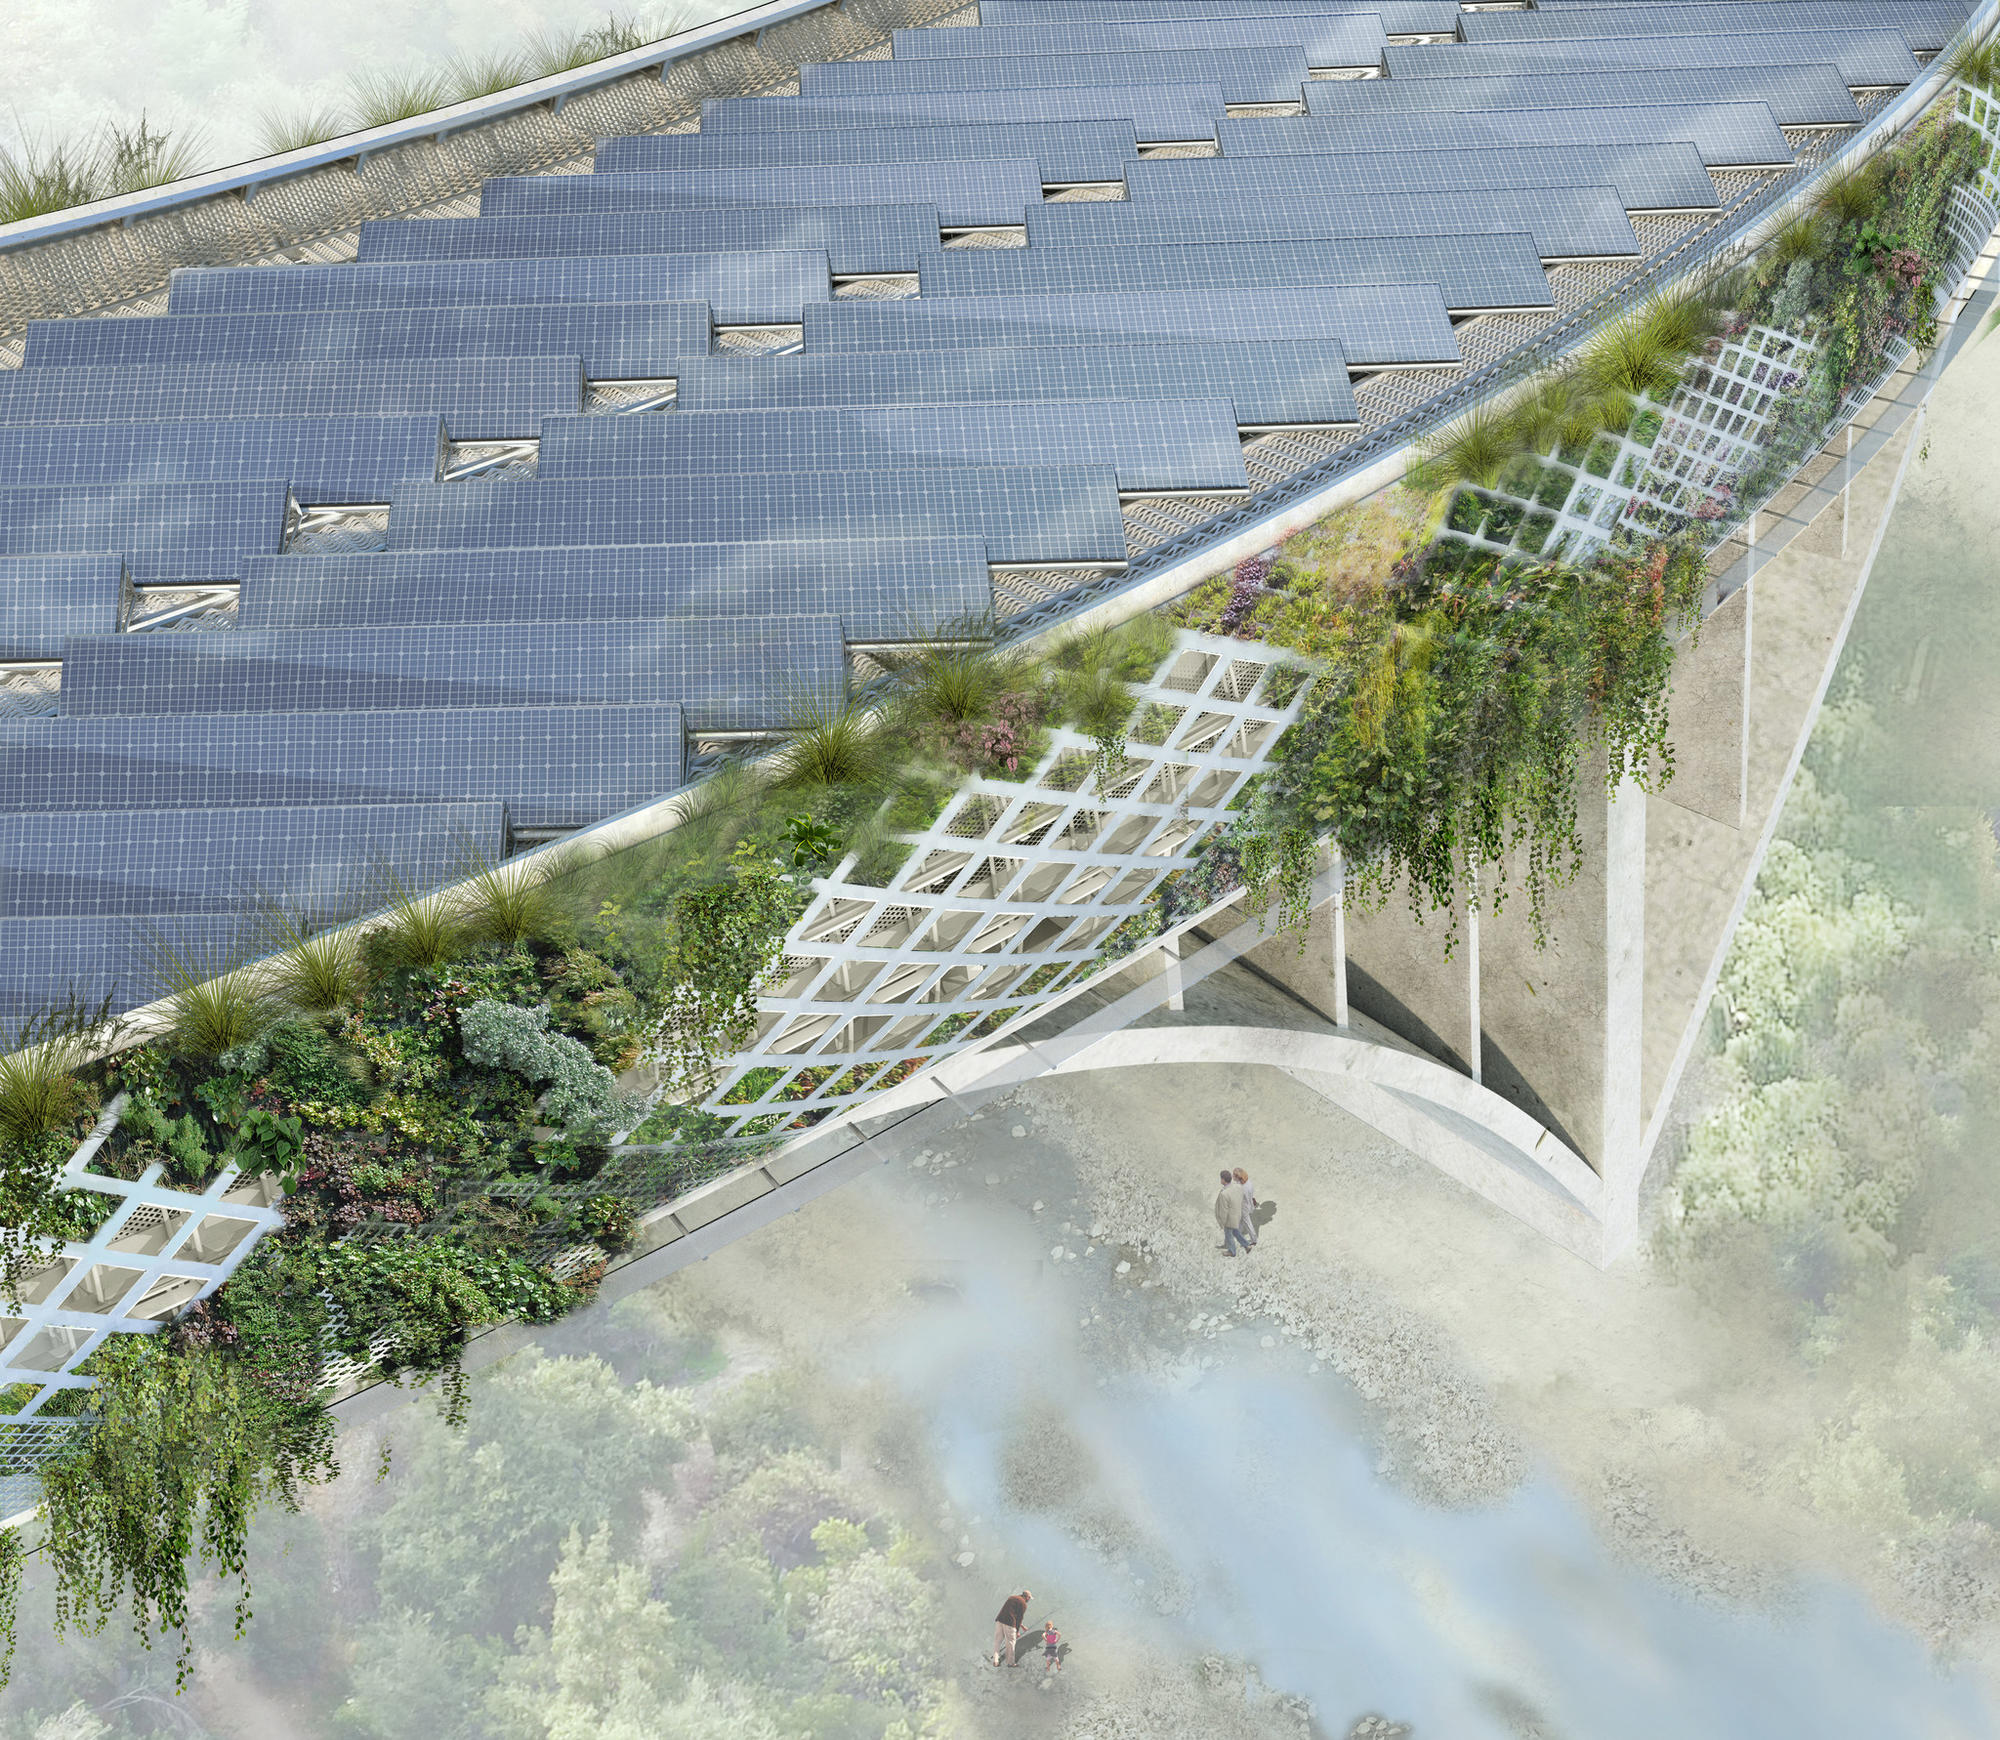 L.A. architect Michael Maltzan's proposes to put photovoltaic panels along the top of the 134 Freeway.